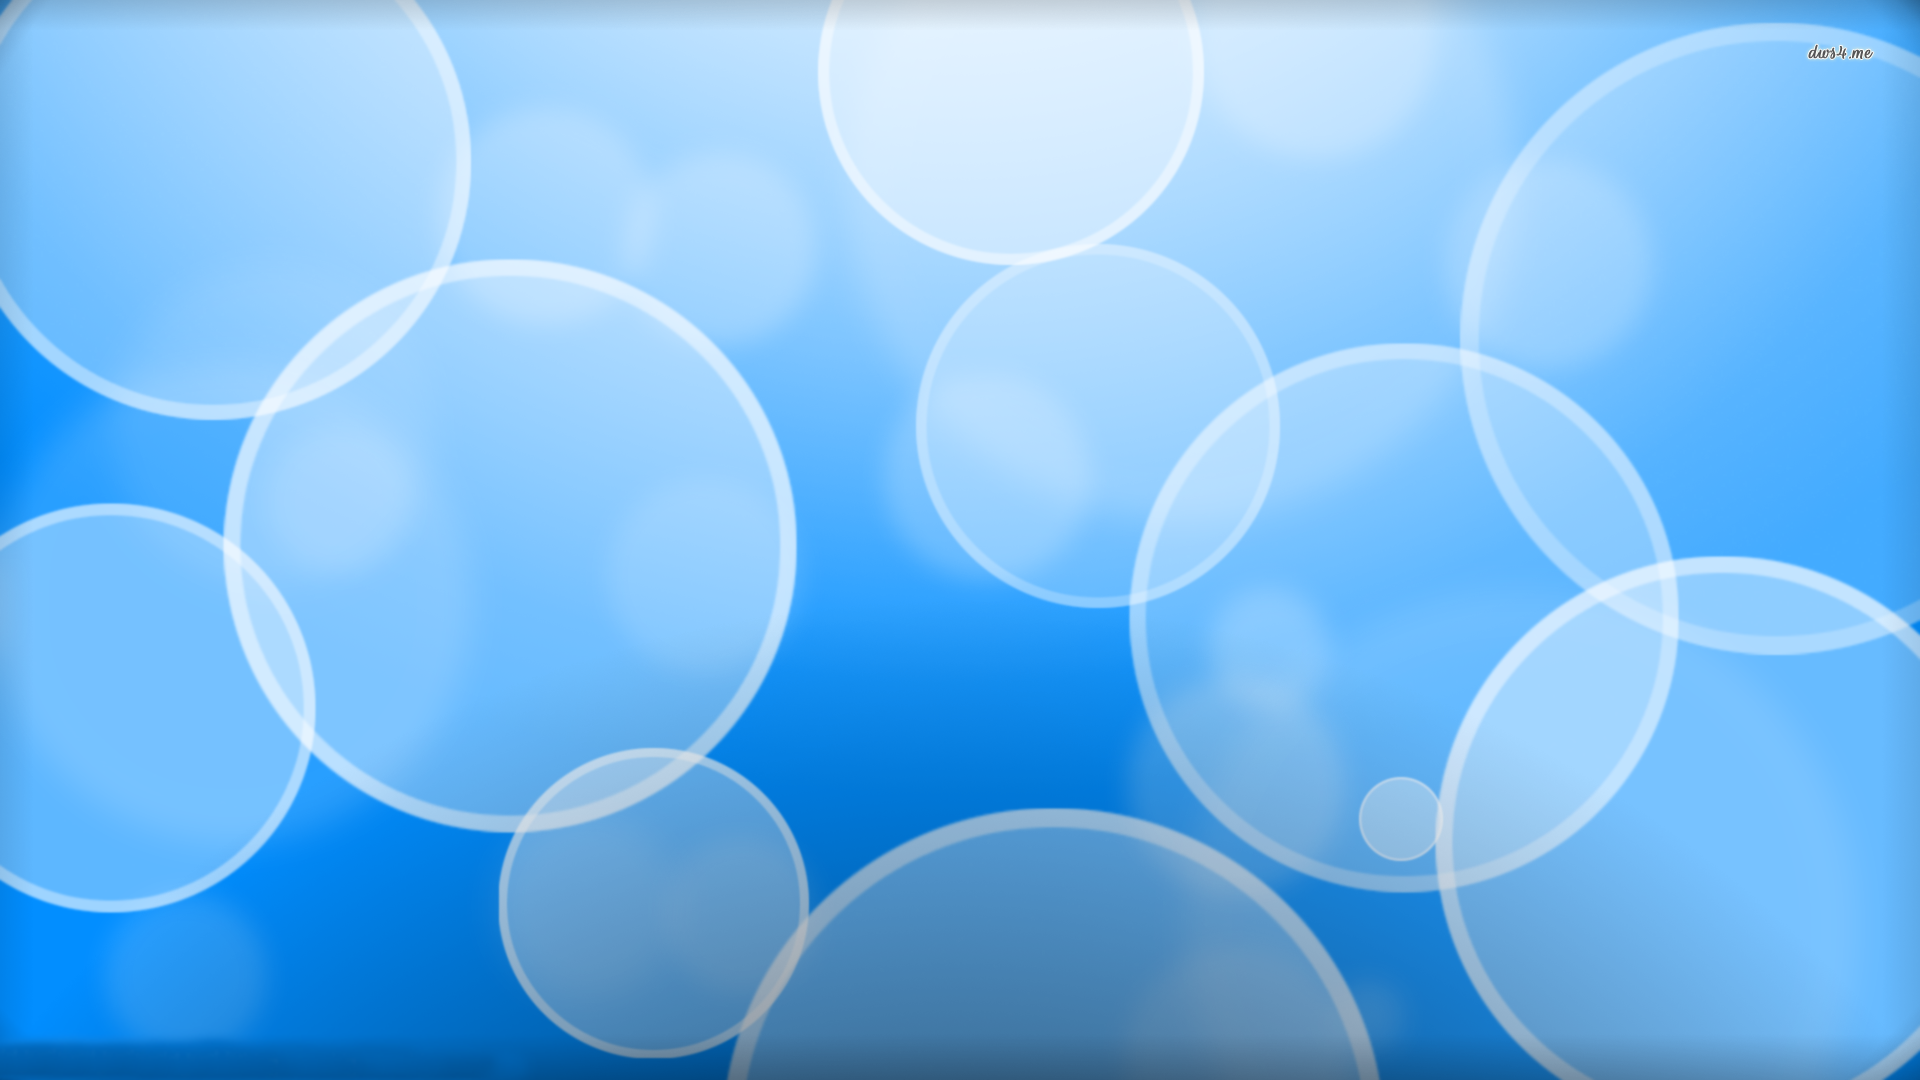 Best Bubbles Wallpapers in High Quality, Dionna Munsell, 0.92 Mb